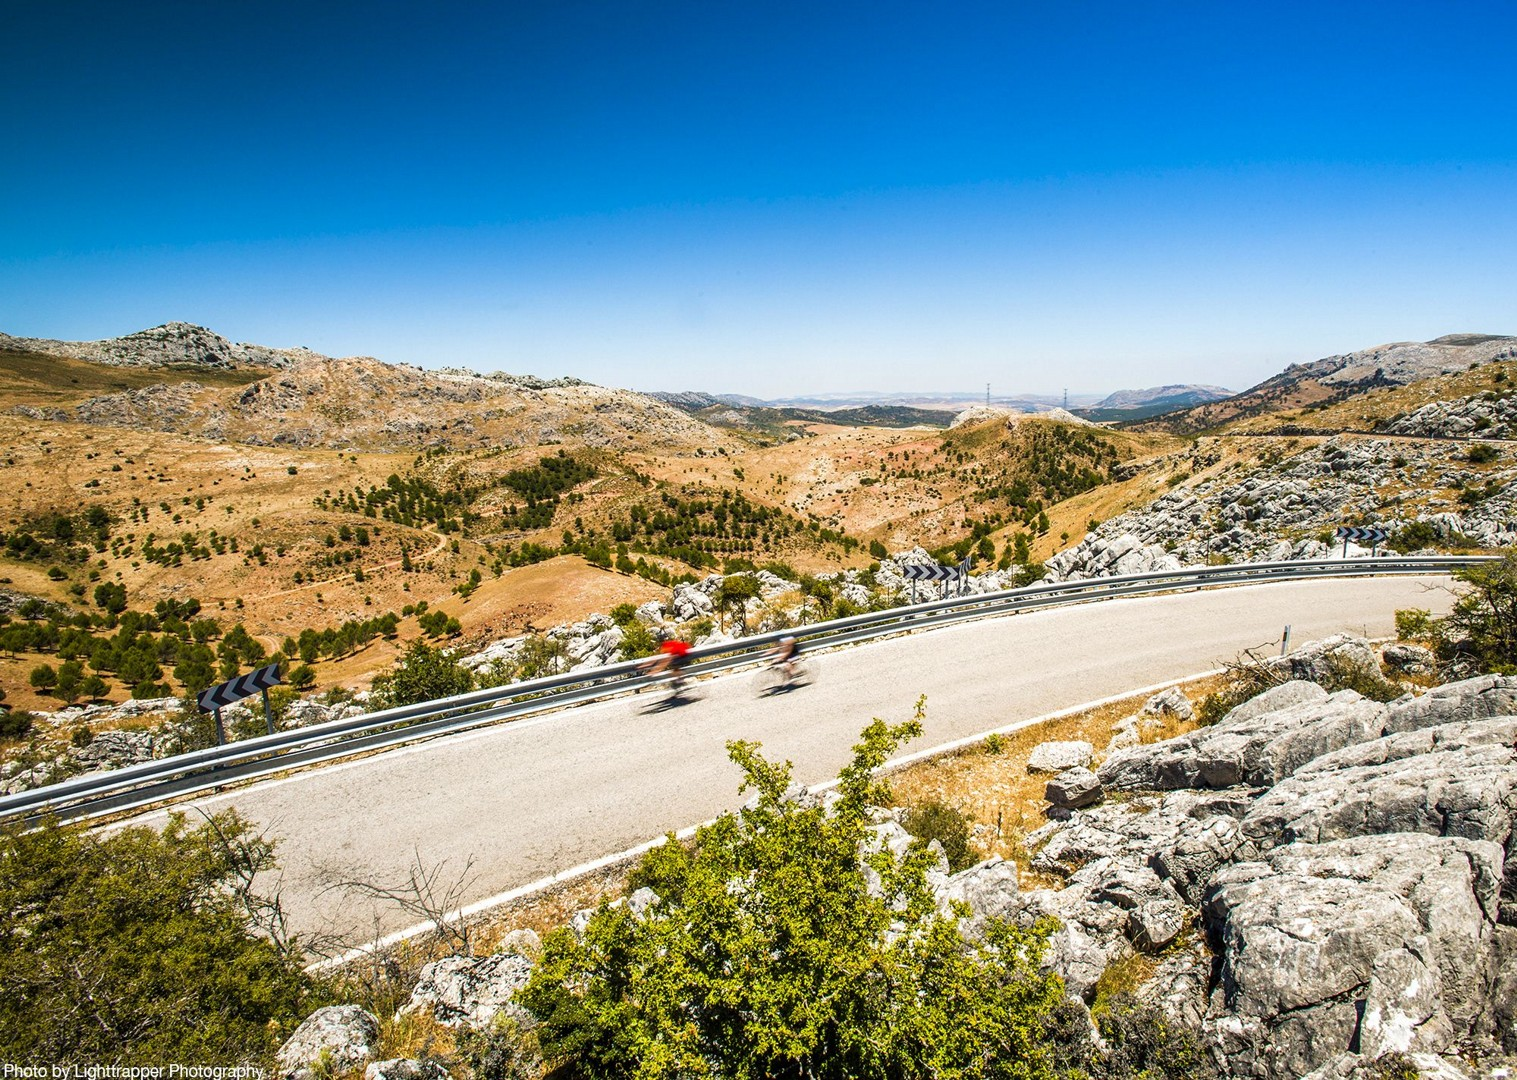 self-guided-road-cycling-with-incredible-views-southern-spain.jpg - Southern Spain - Roads of Ronda - Self-Guided Road Cycling Holiday - Road Cycling